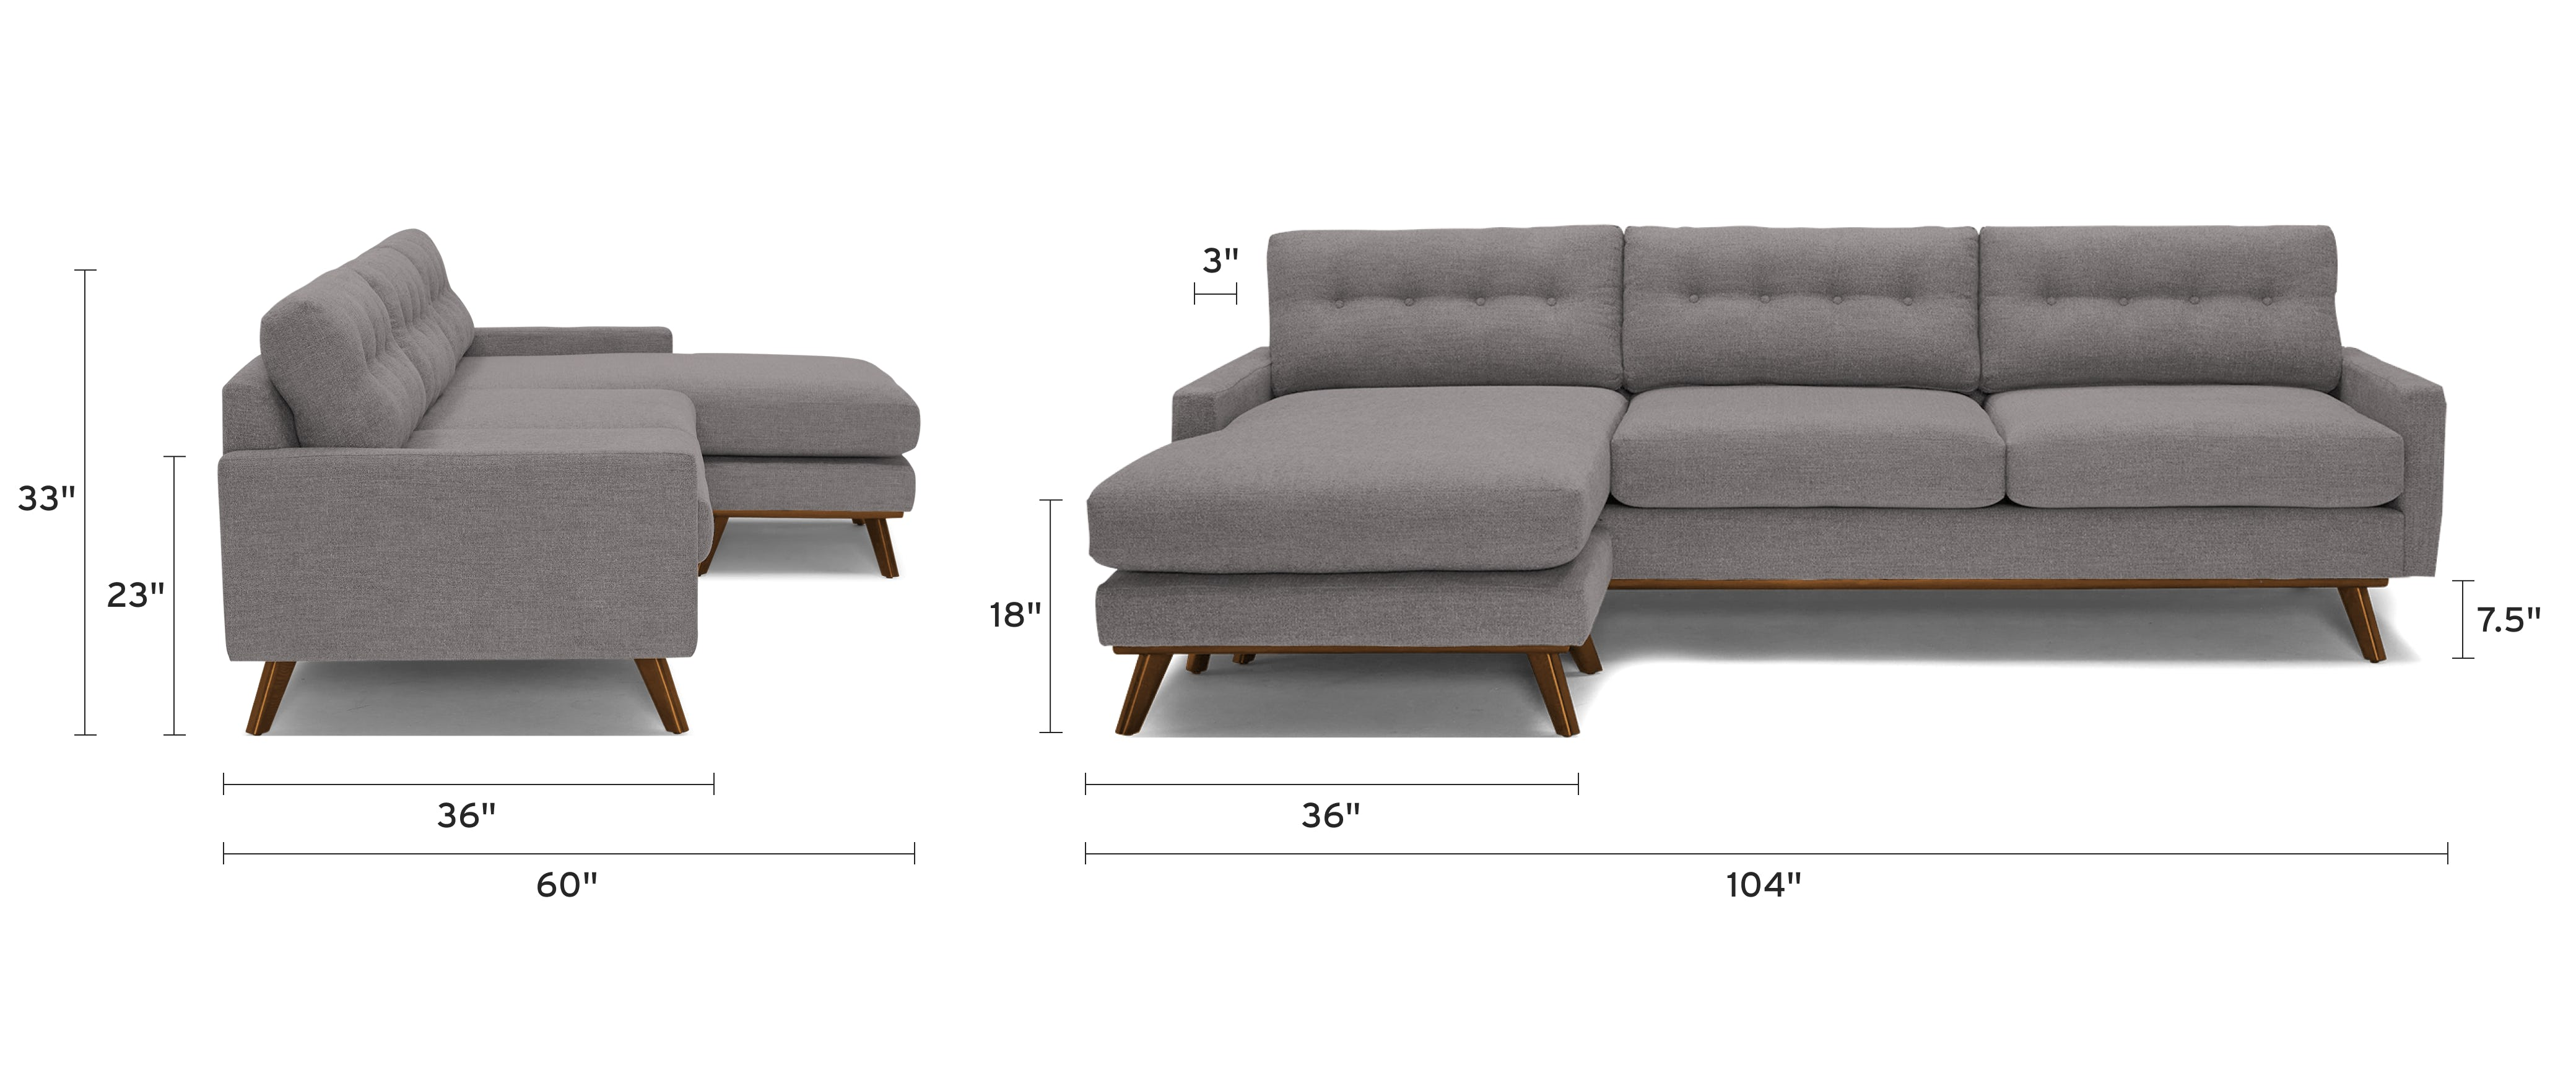 hopson reversible sectional dimensional image